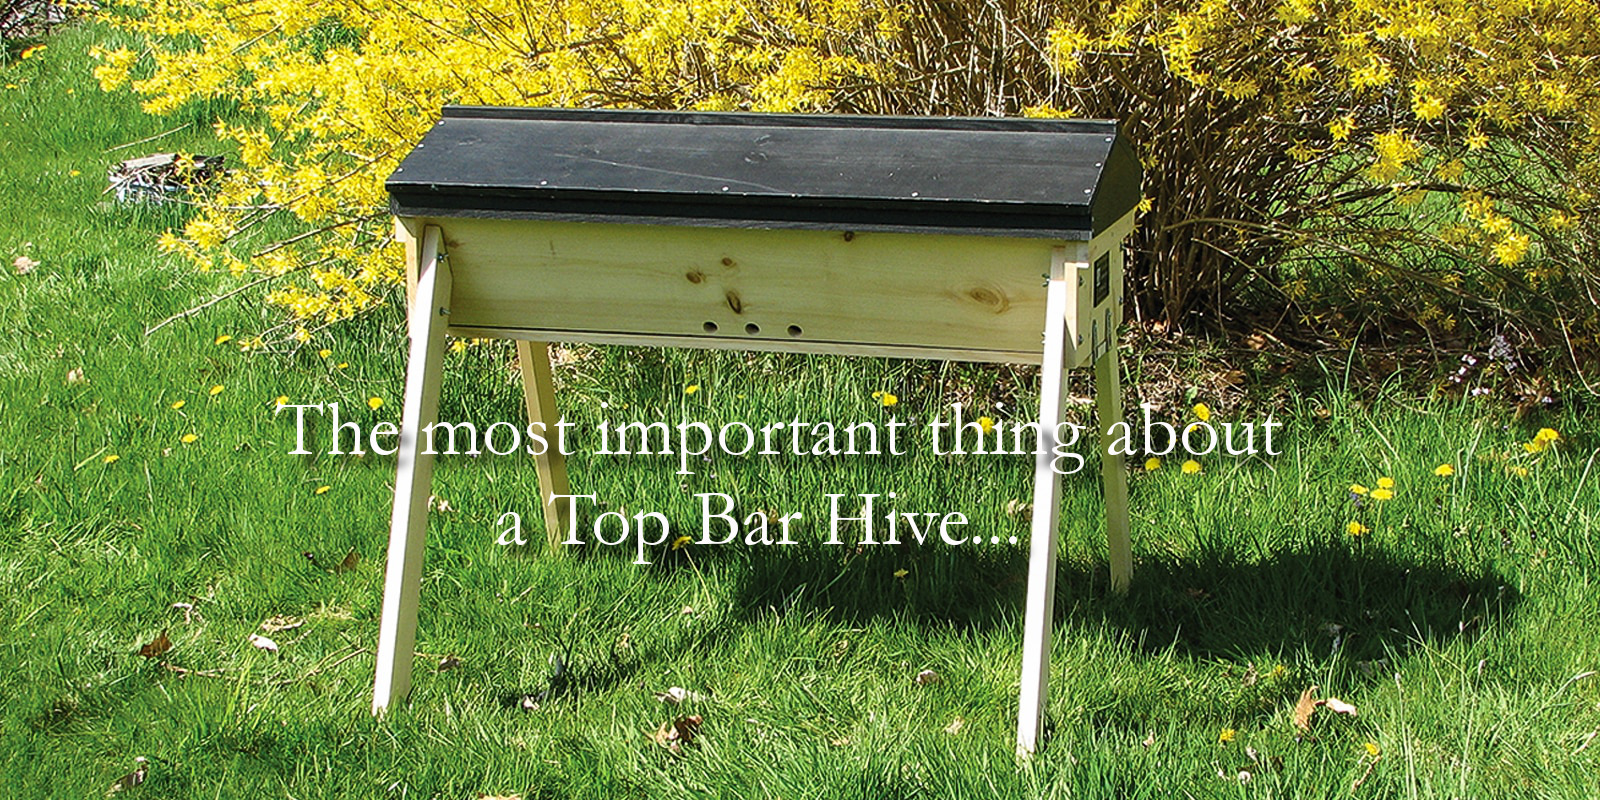 The most important thing about a top bar hive